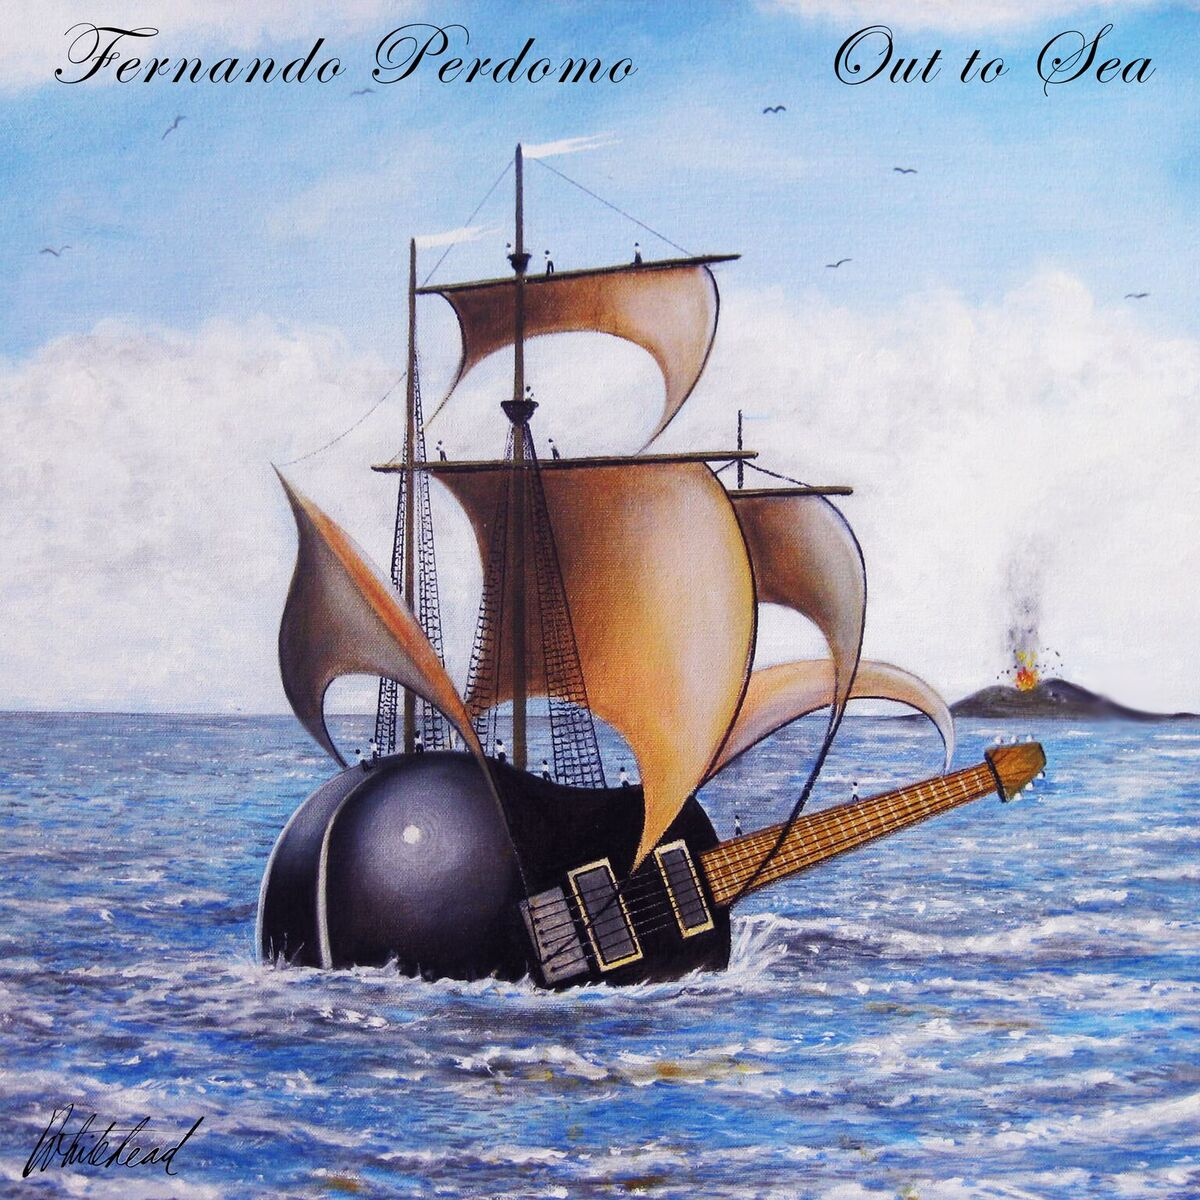 Out to sea - FERNANDO PERDOMO